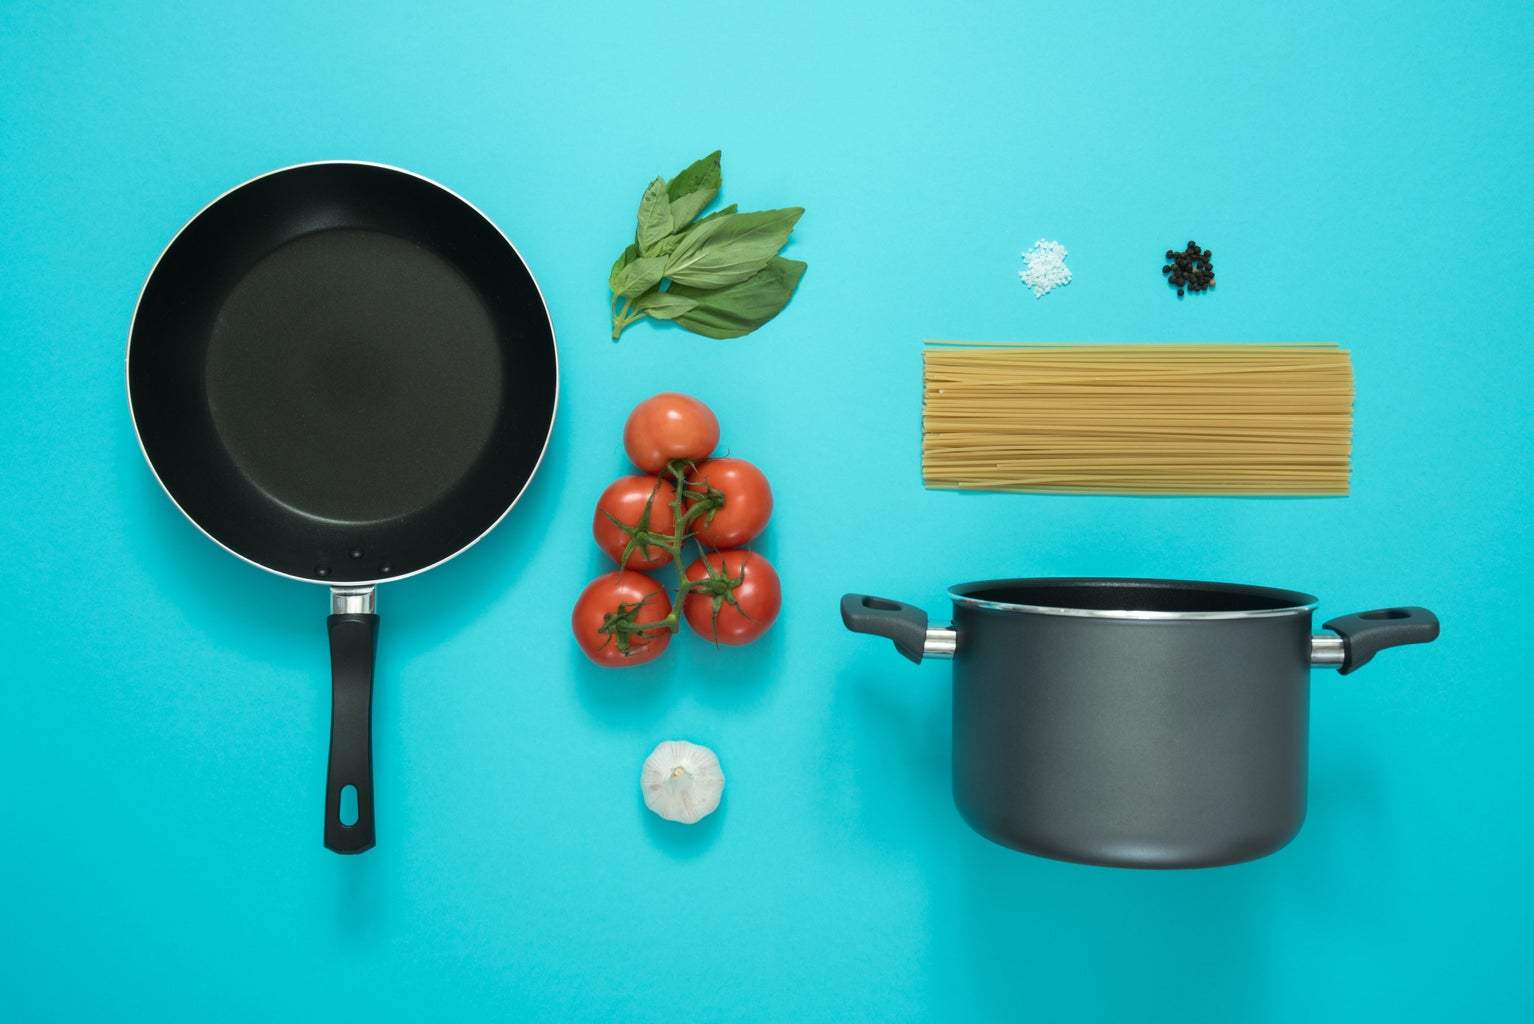 aesthetic layout of cooking supplies on a blue background